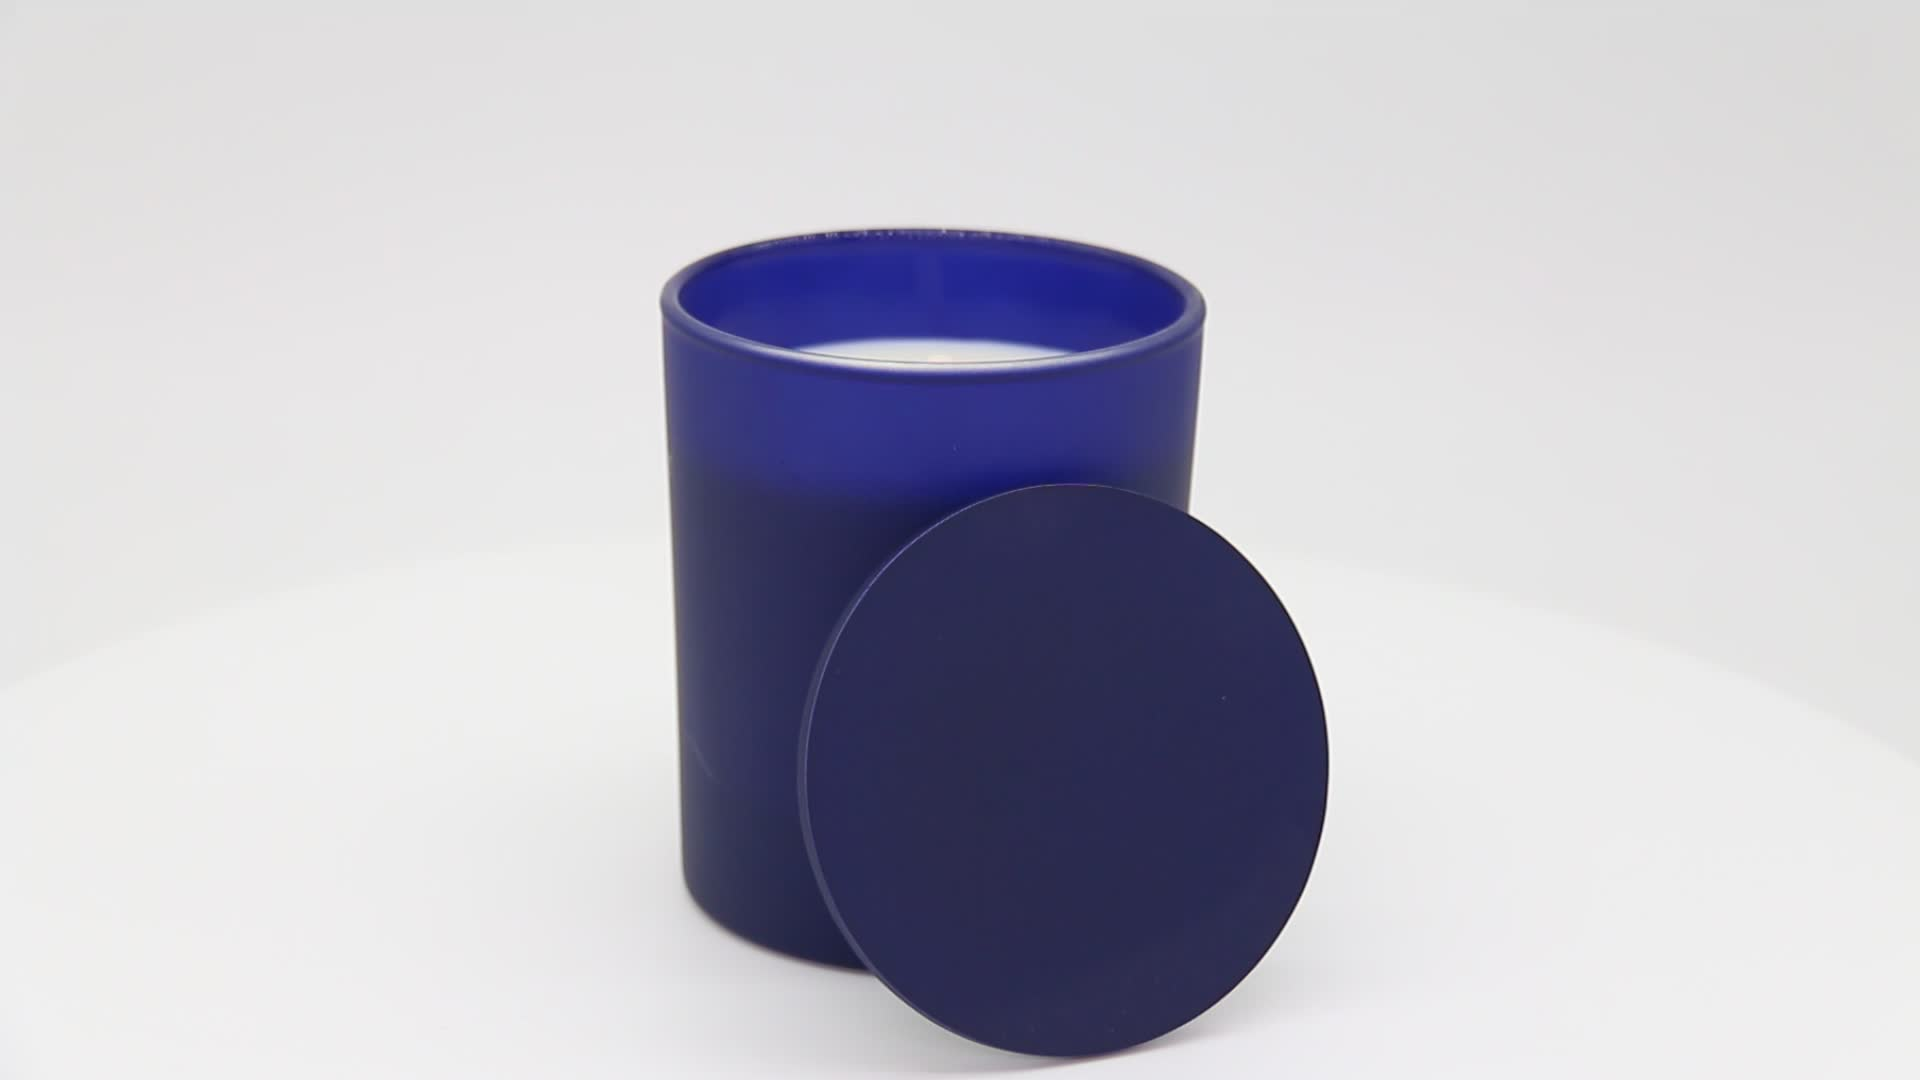 200g soy candle matt color glass jar candle with lid